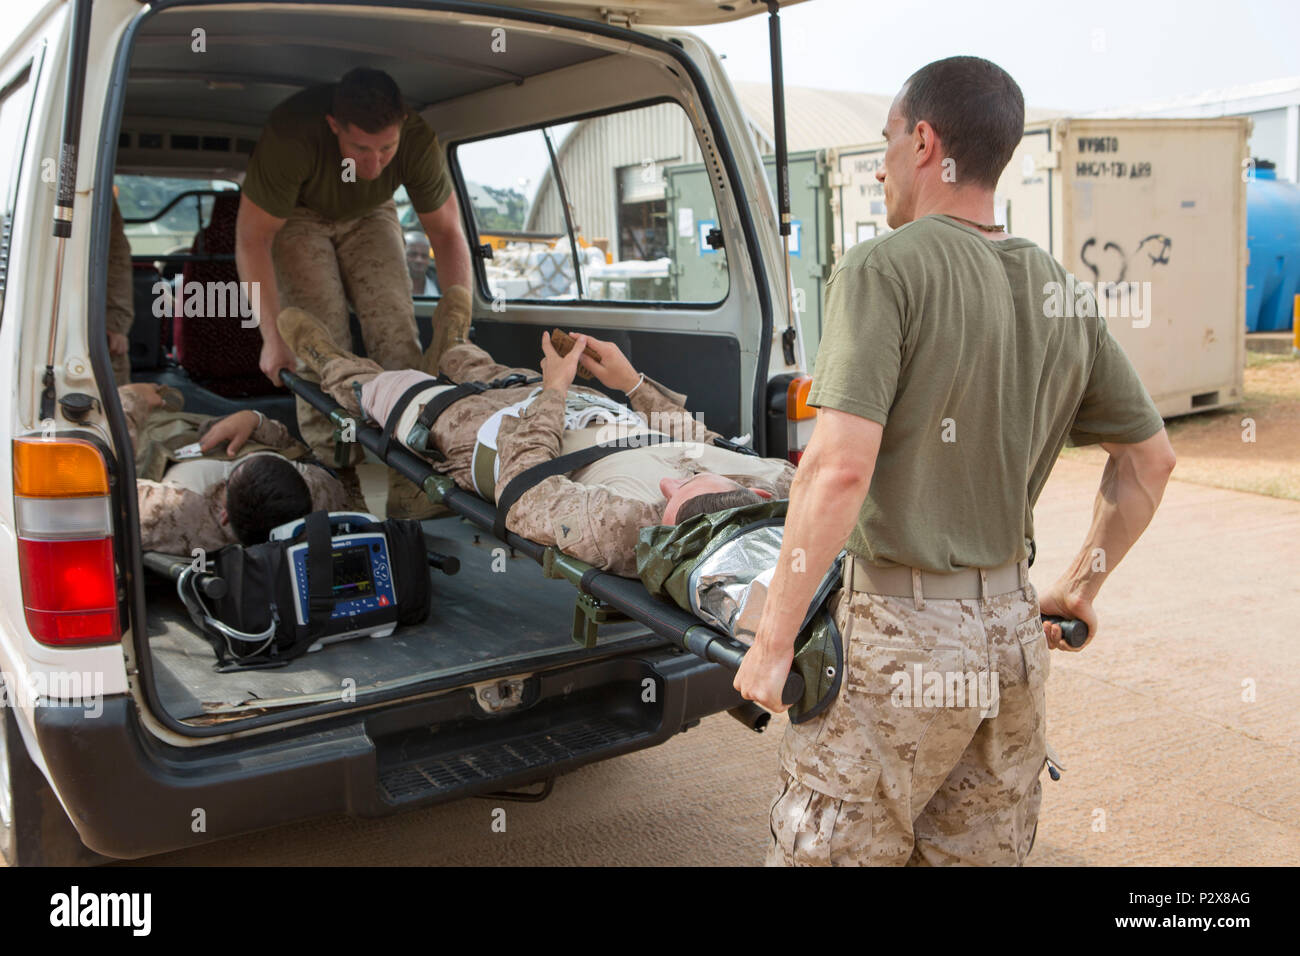 U.S. Navy Lt. Cmdr. Robert Oldt, an Emergency Physician, and Cpl. Kenneth Bourgeois, a Refrigeration/Air Conditioning Technician, both with Special Purpose Marine Air-Ground Task Force-Crisis Response-Africa unload a simulated casualty for patient movement and triage during a mass casualty drill, August 1, 2016. SPMAGTF-CR-AF Medical personnel were put to the test with realistic medical emergencies and taught to improvise during unforeseen circumstances to enhance mission readiness in the event of a future crisis. (U.S. Marine Corps Photo by Sgt. Kassie McDole.) Stock Photo